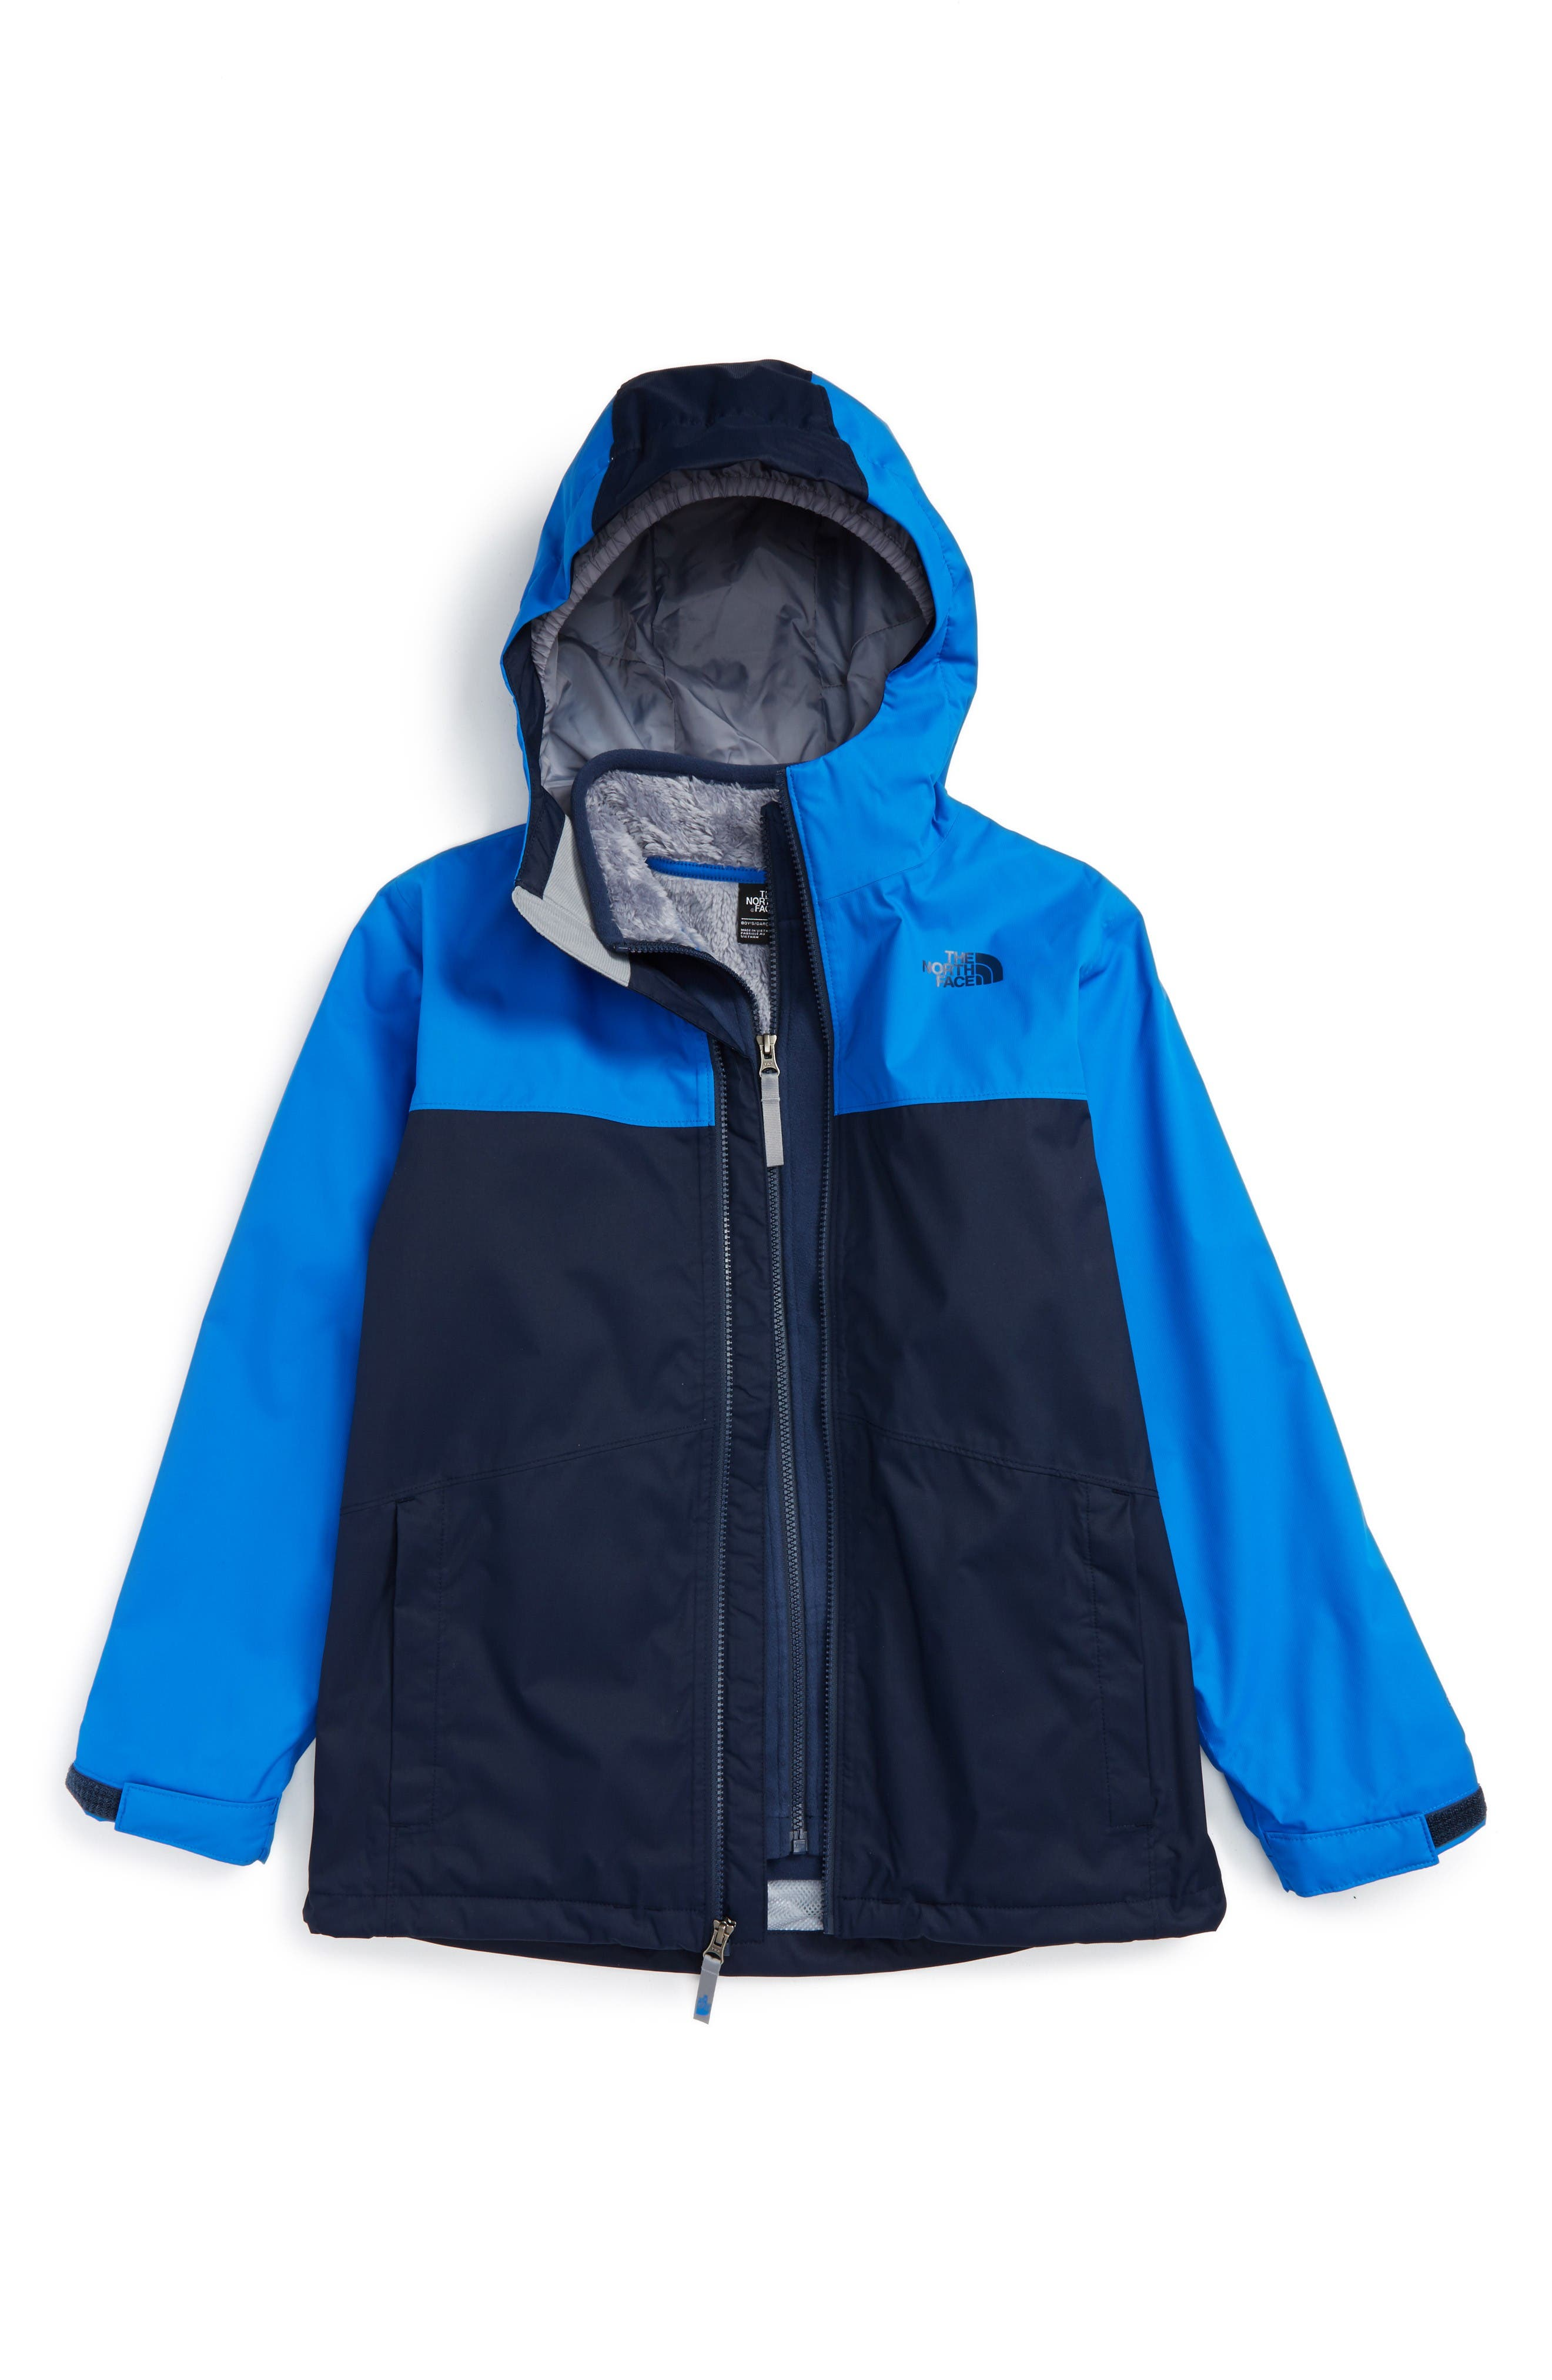 Main Image - The North Face Chimborazo Triclimate® Waterproof 3-in-1 Jacket (Big Boys)